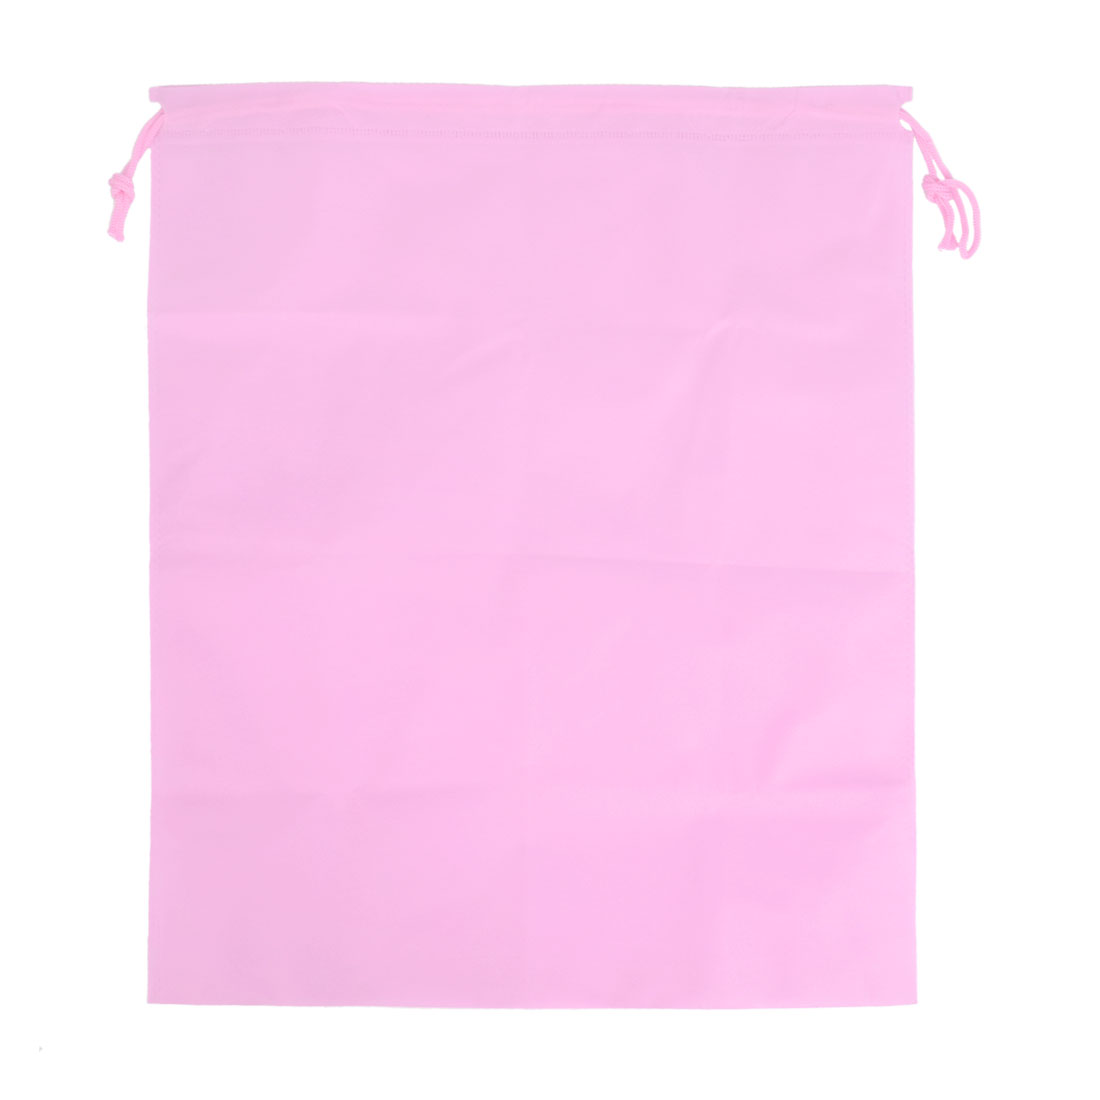 Traveling Clothes Dust Cover Storage Drawstring Bags 23 x 17cm Pink